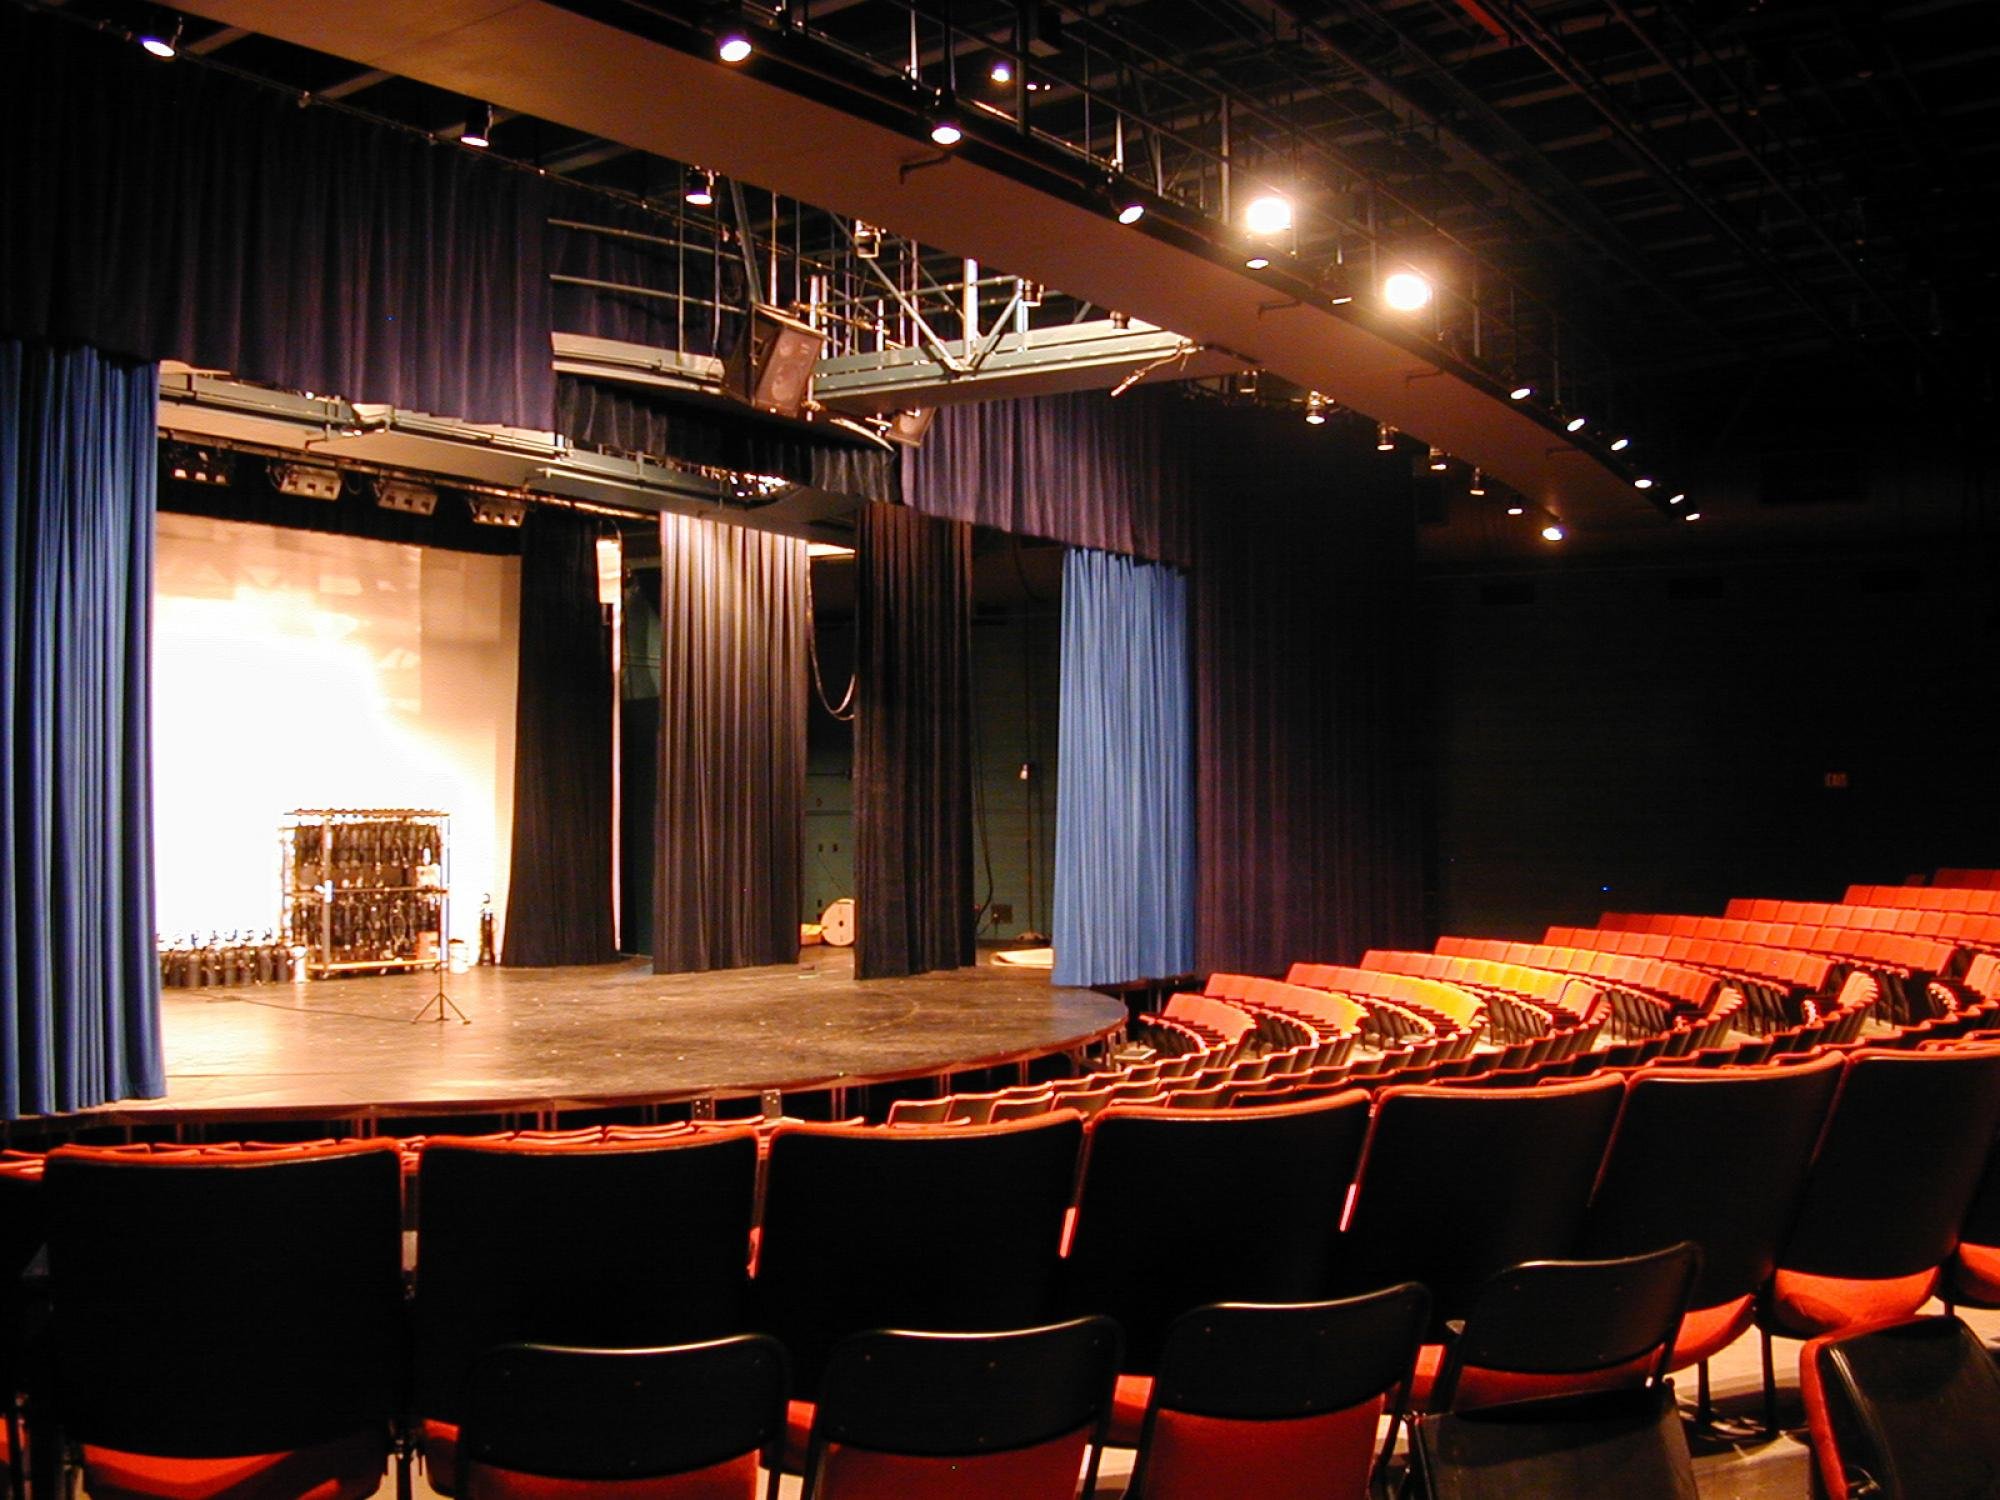 Roberts Theater